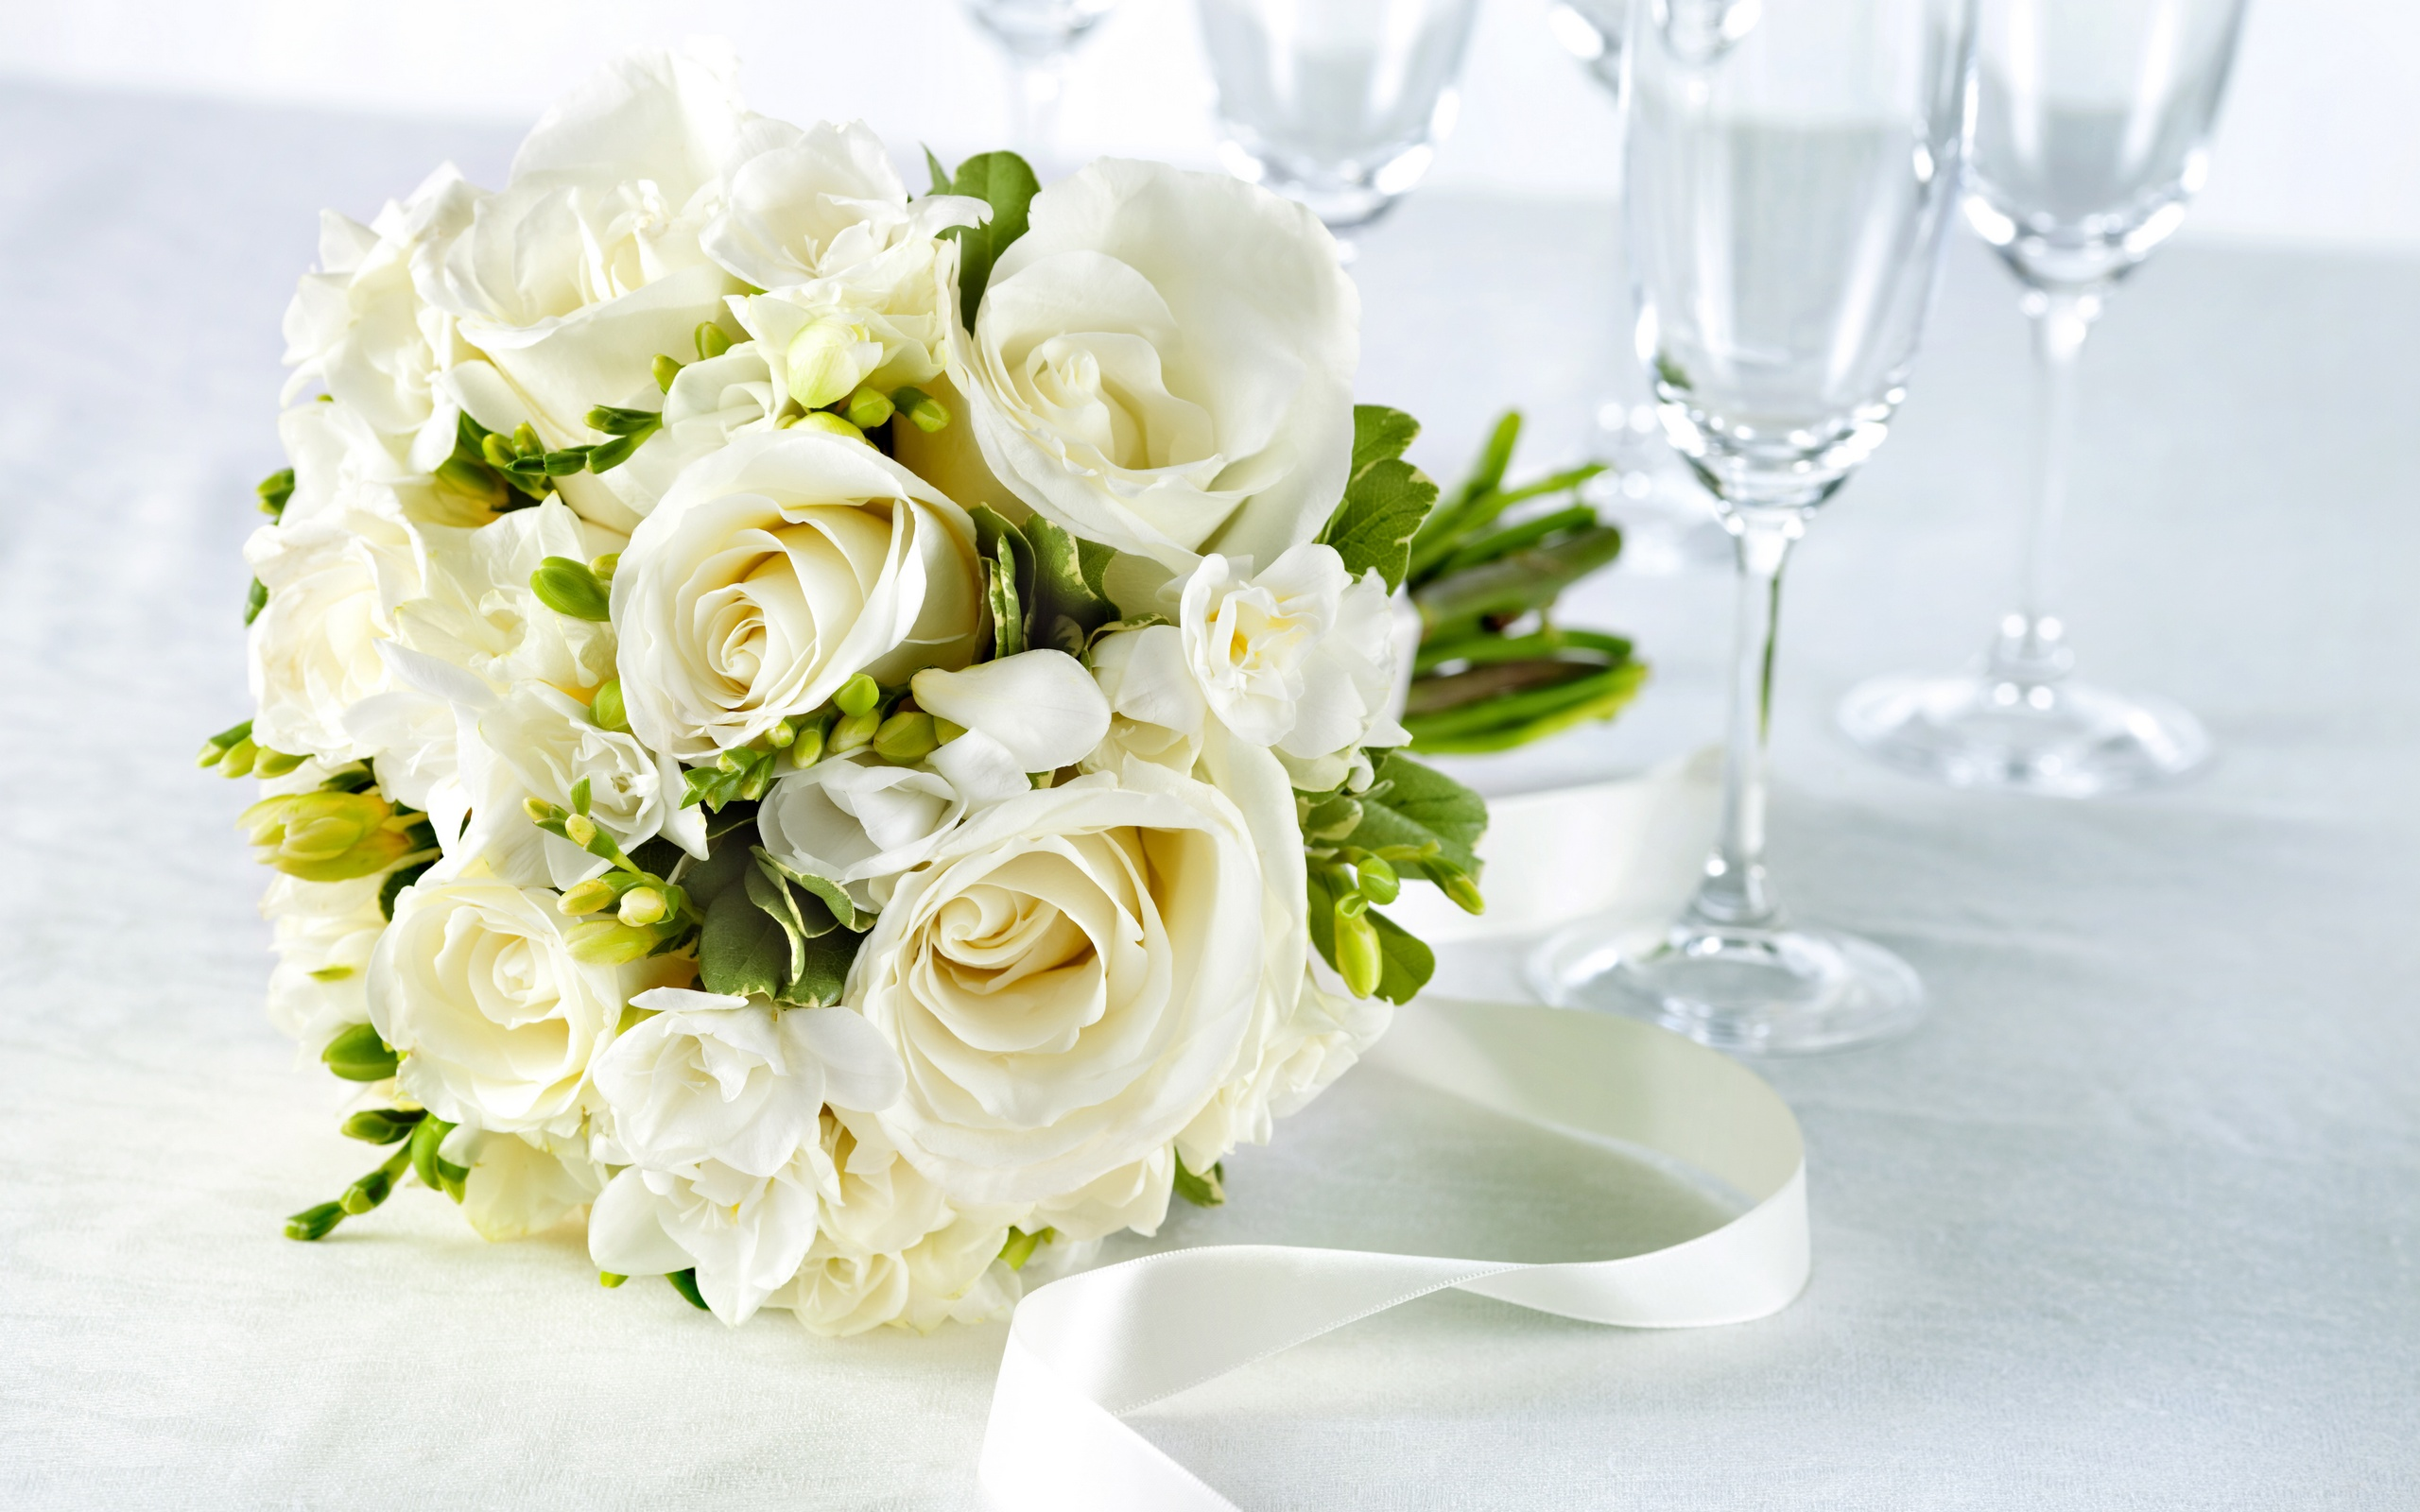 White images white rose hd wallpaper and background photos 34727338 white images white rose hd wallpaper and background photos mightylinksfo